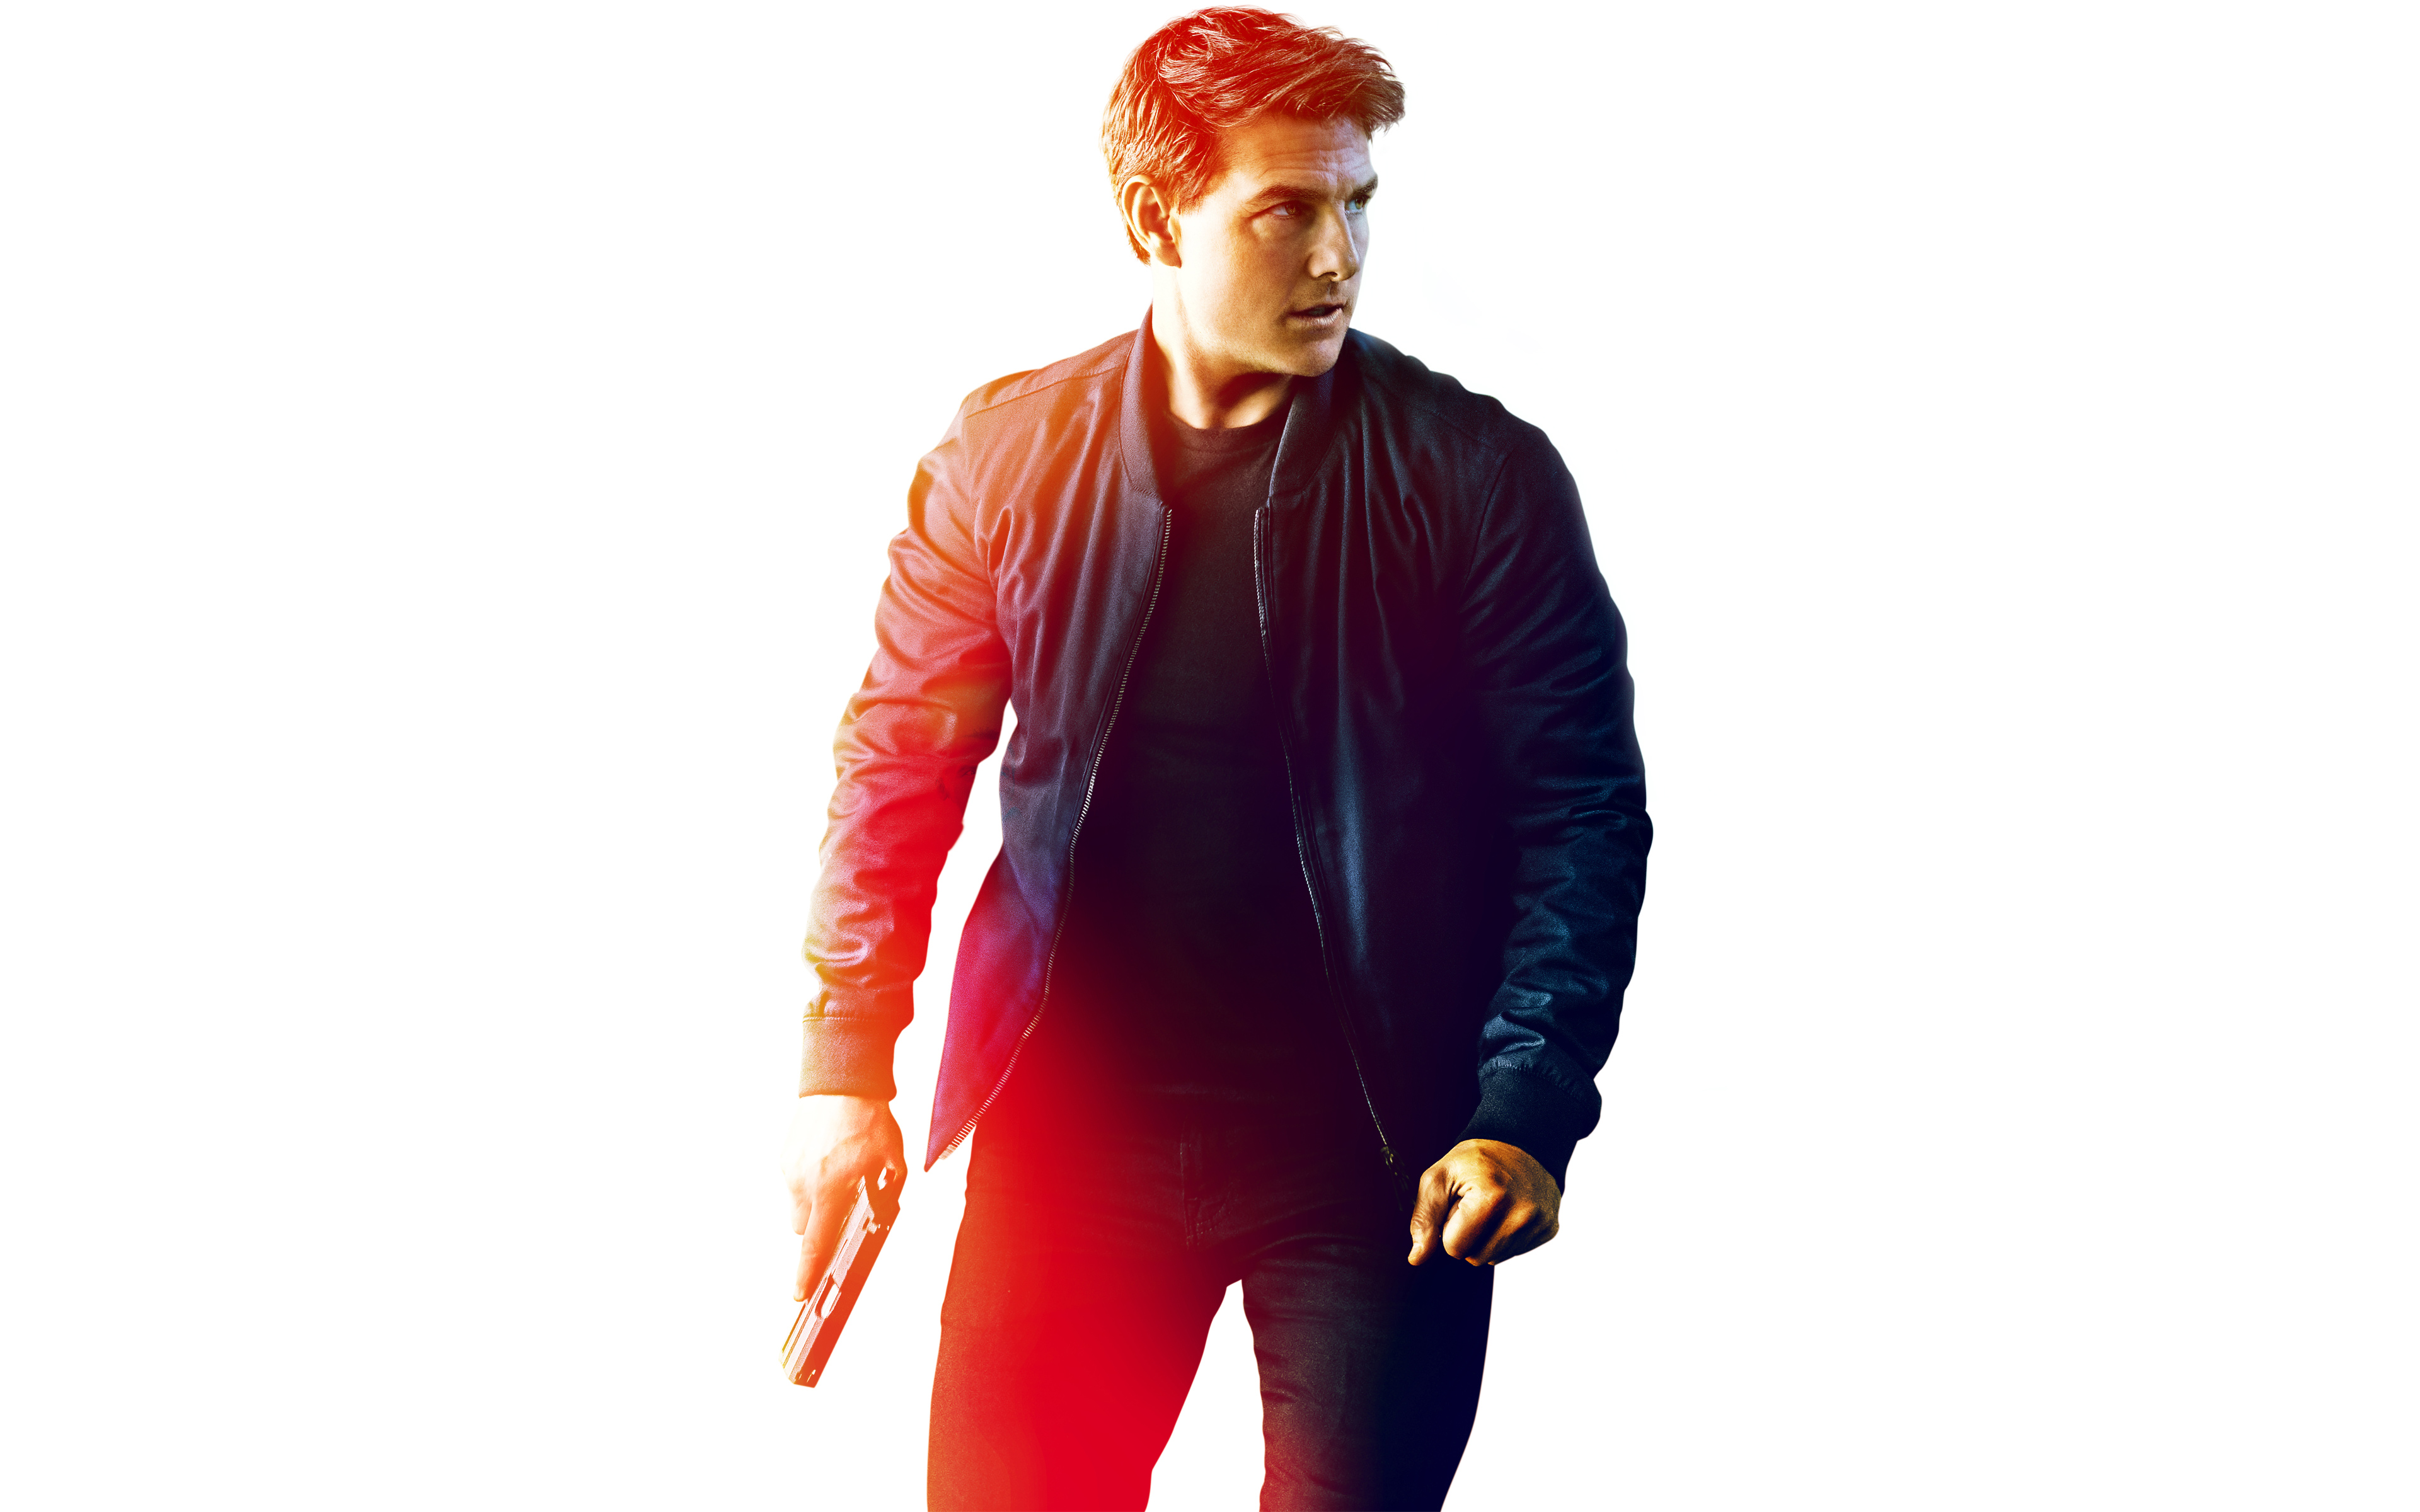 Tom Cruise in Mission Impossible Fallout 4K 8K Wallpapers HD 3840x2400